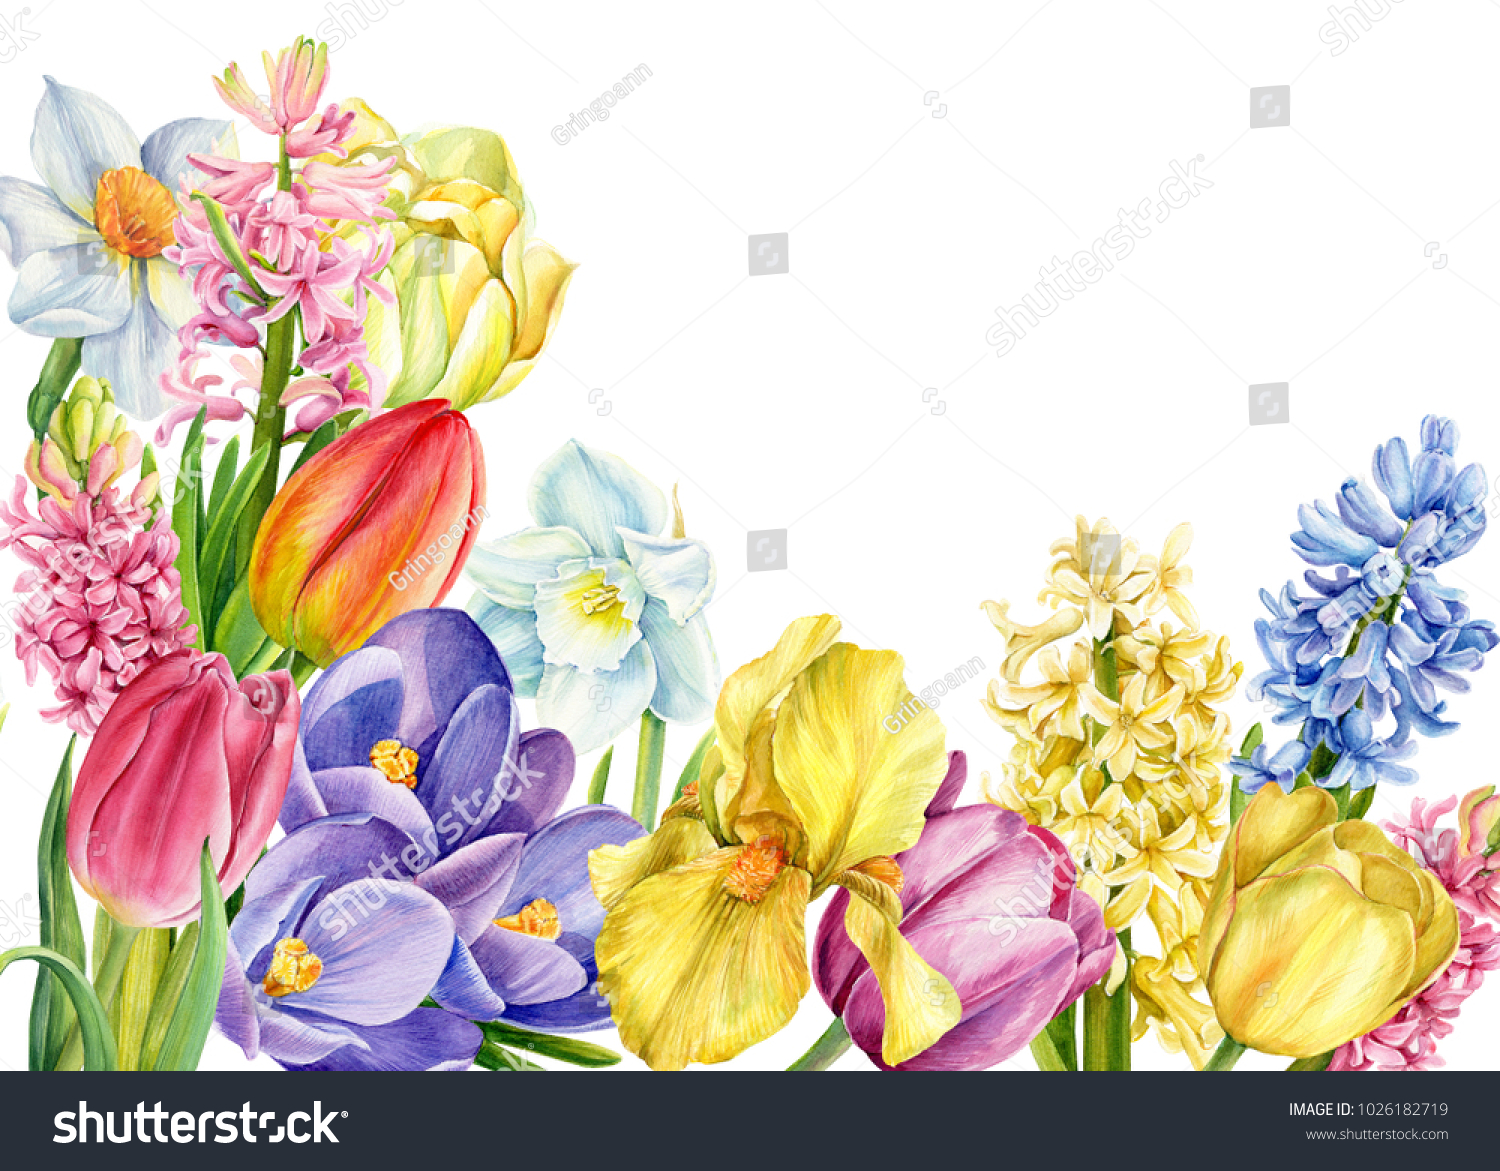 Bouquet Spring Flowers Watercolor Illustration Botanical Stock ...